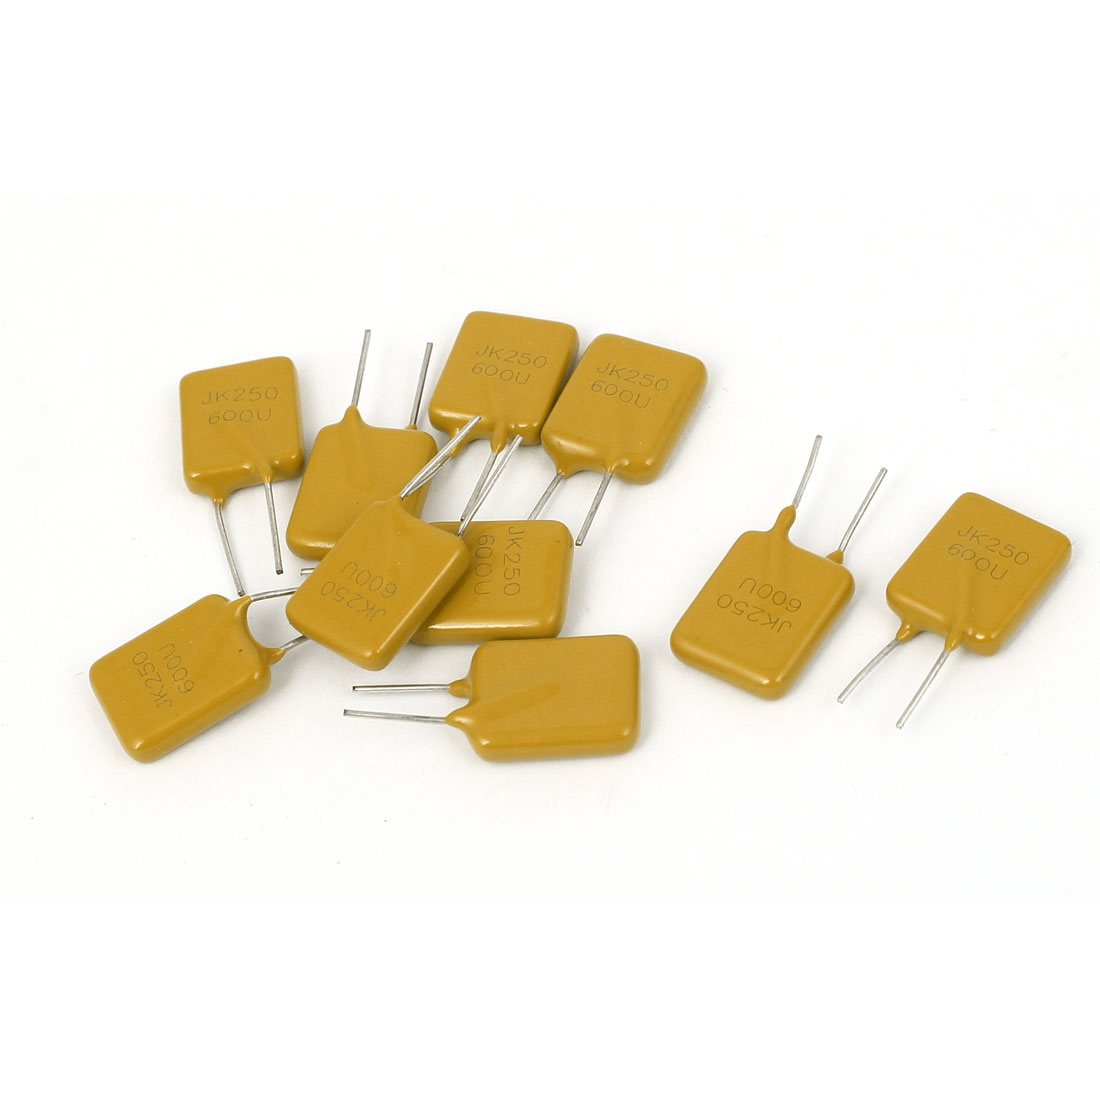 10 Pcs 250V 0.6A Resettable Fuse Radial Through Hole PPTC Polyswitch